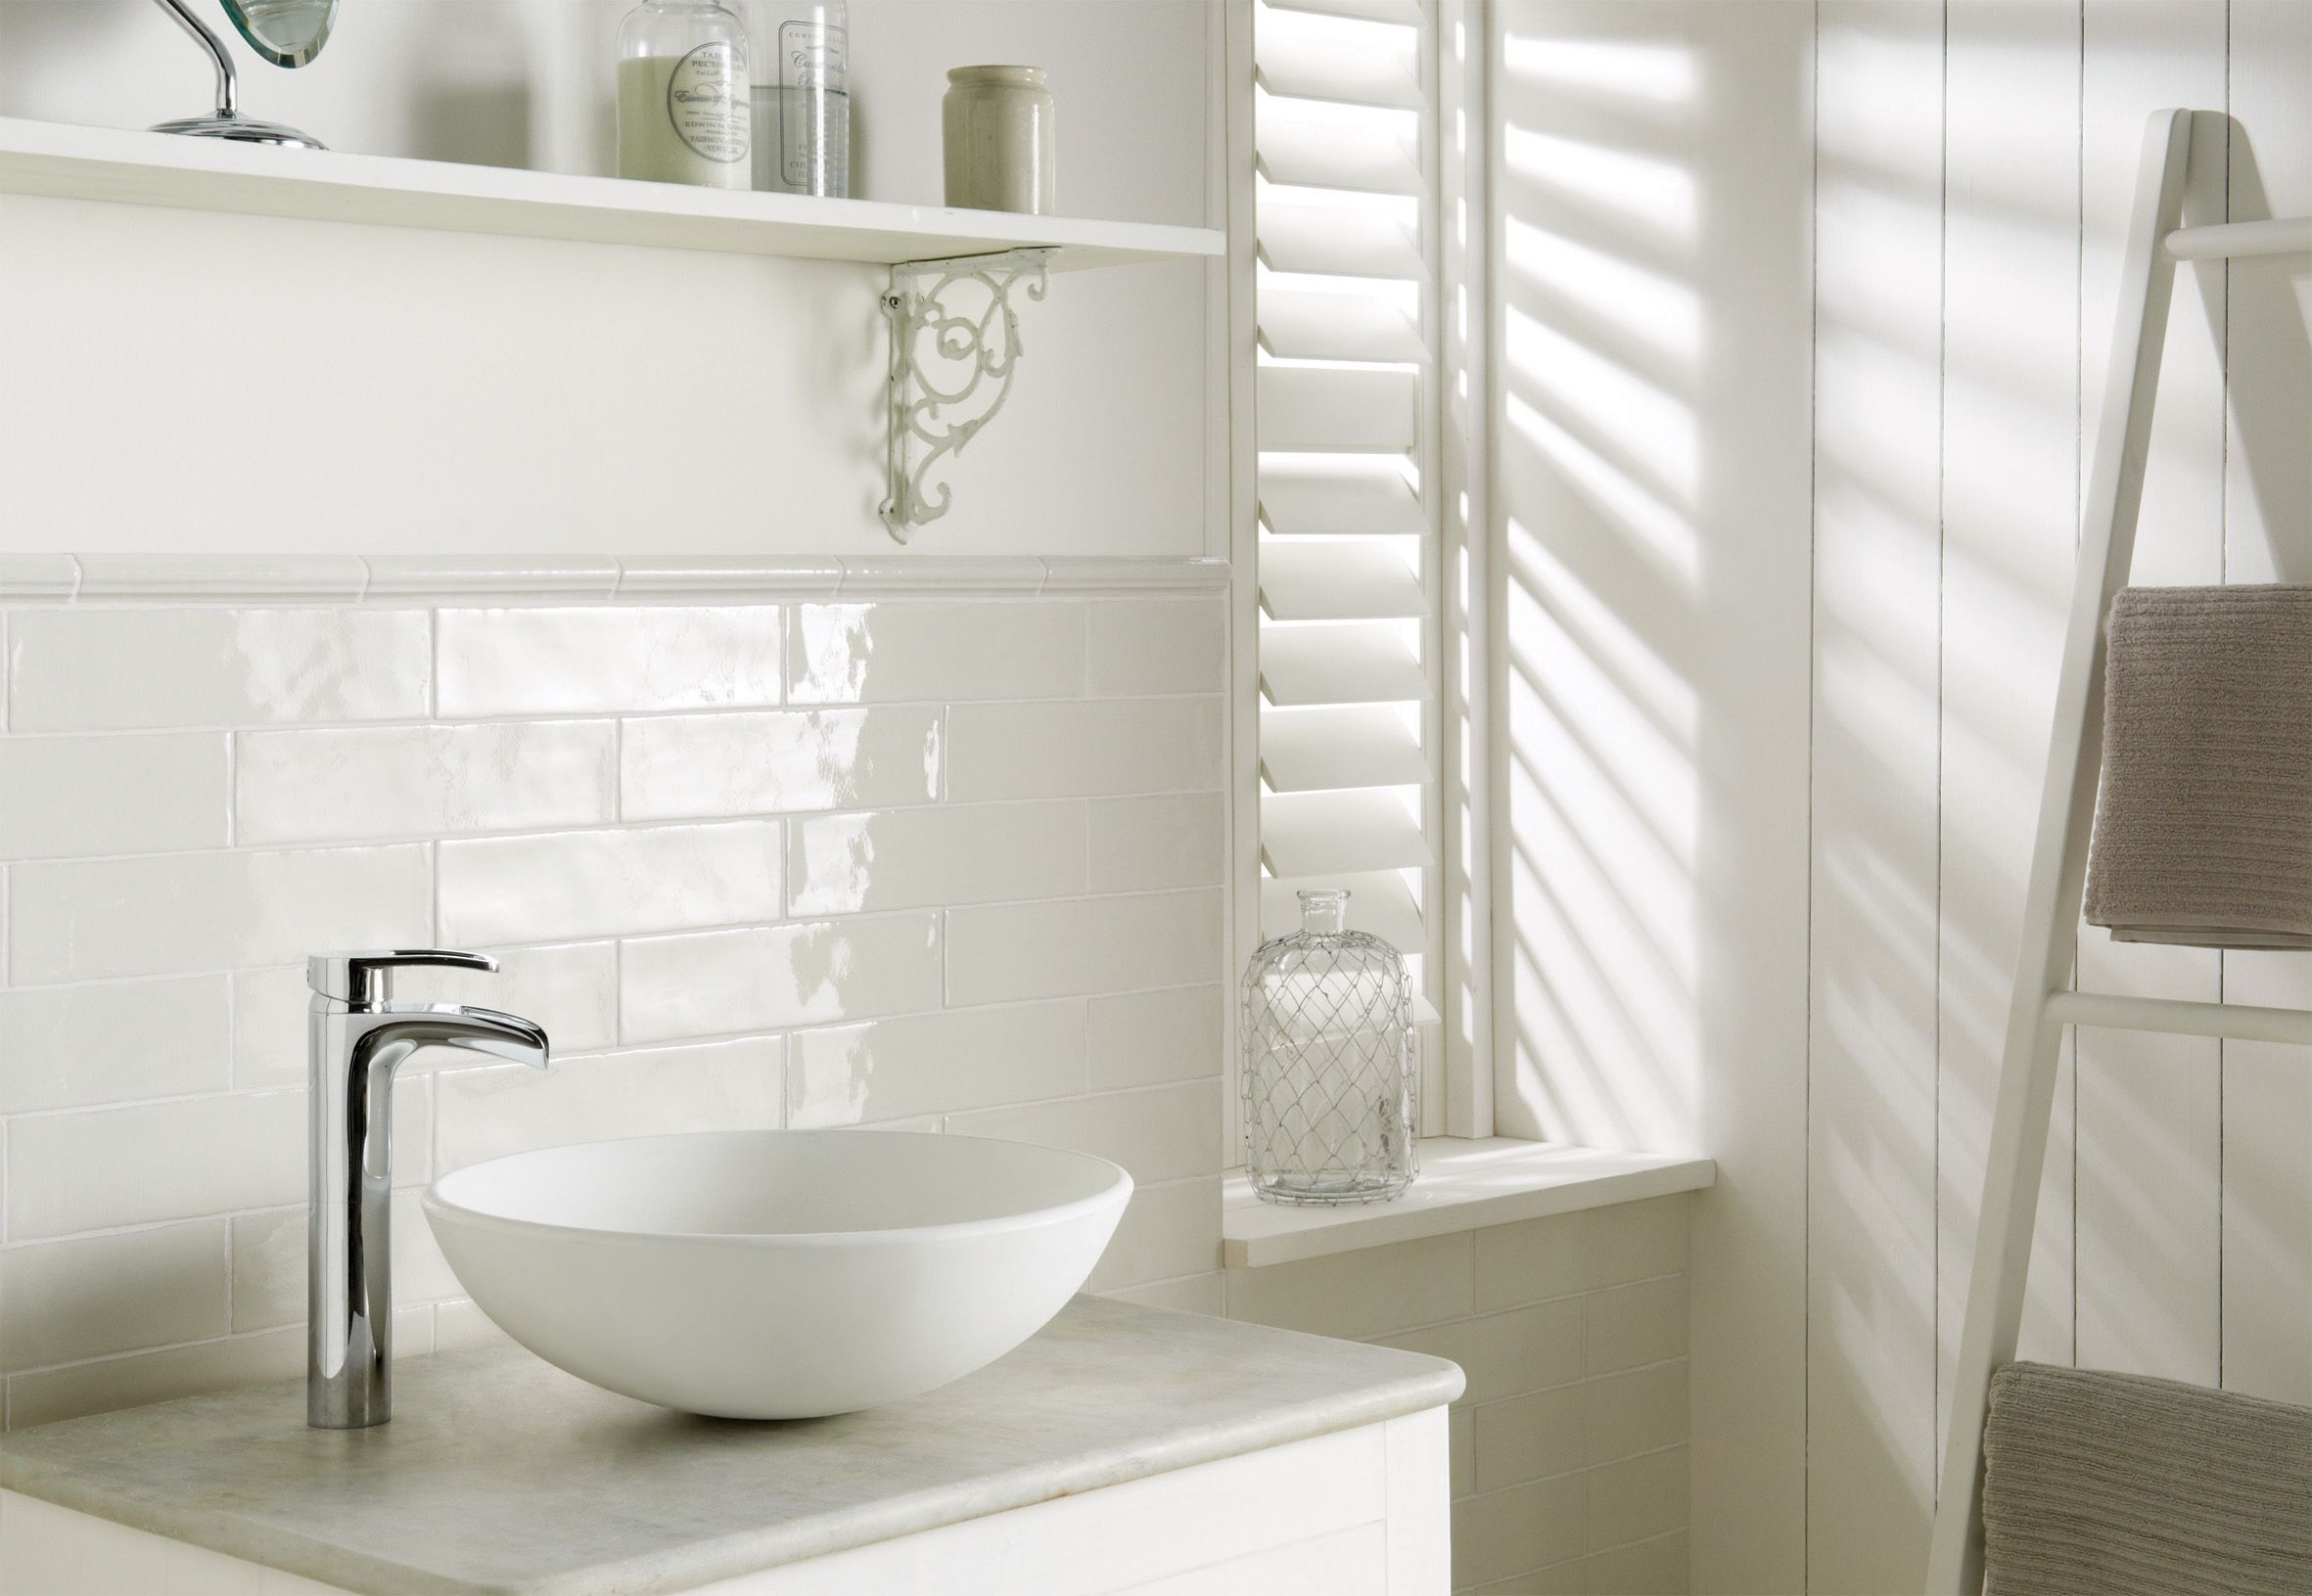 Available from Welby & Wright. The long brick shape of these white ...